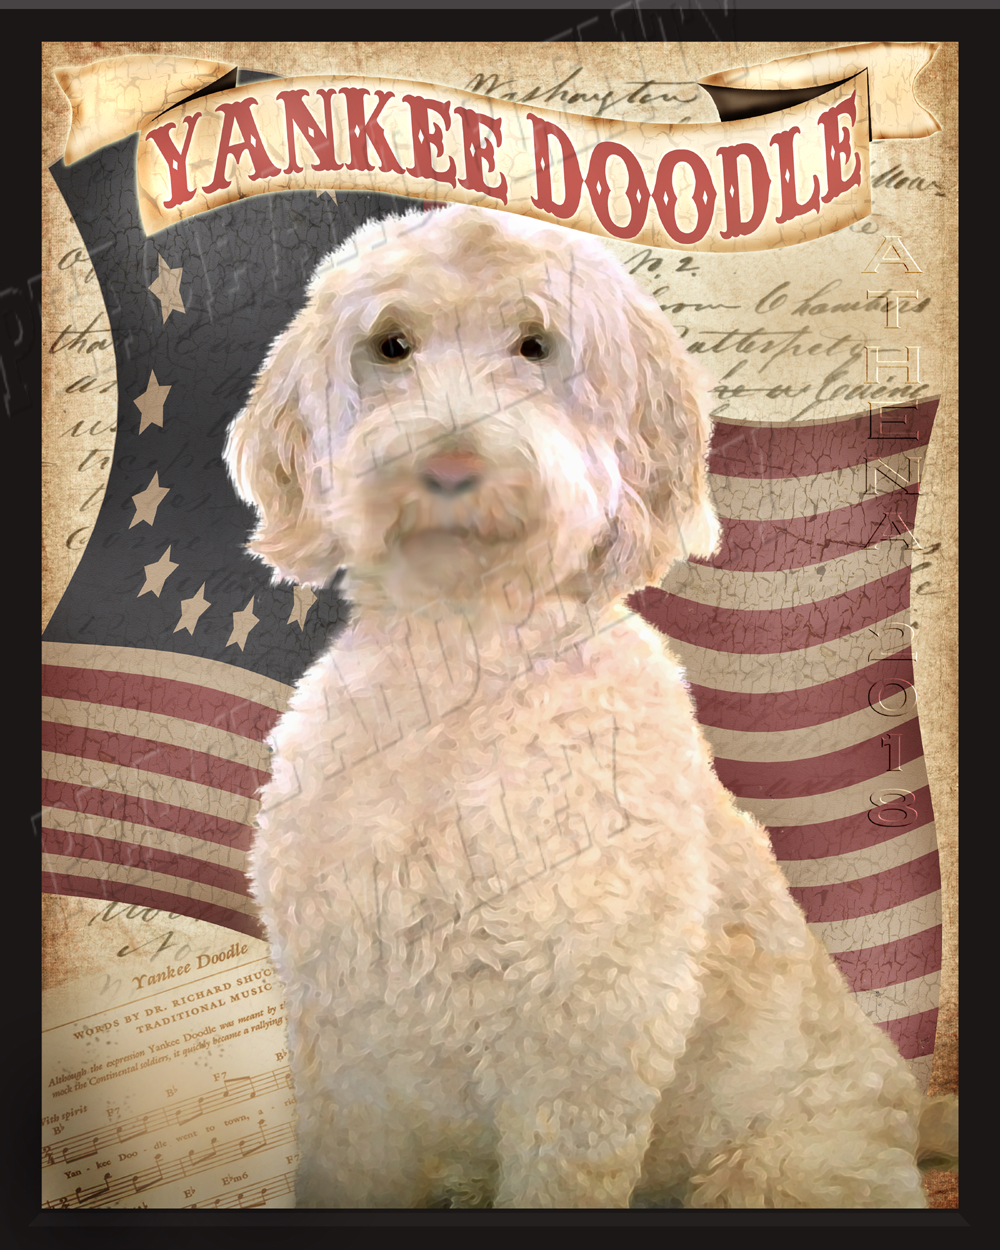 yankee doodle framed Low Res Watermarked